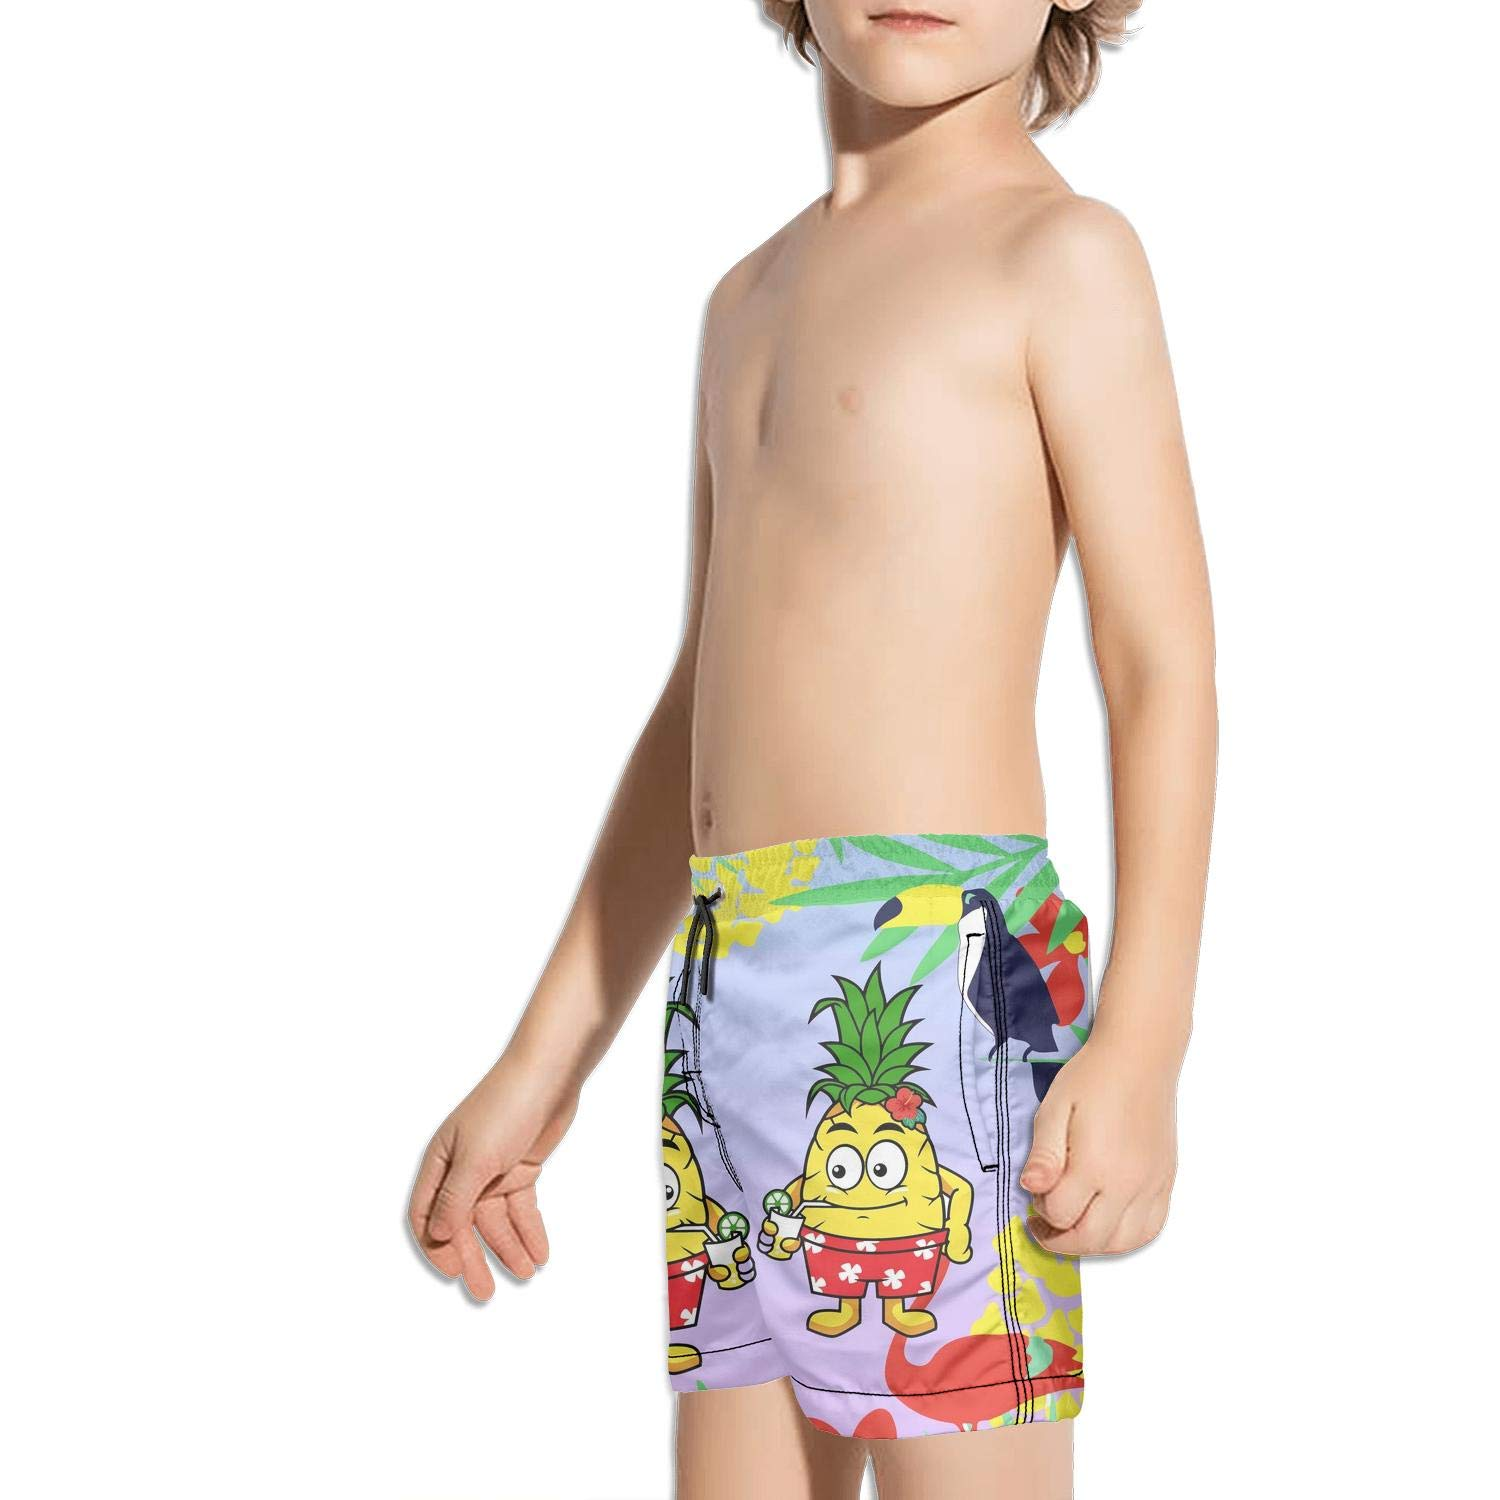 NAIT.2 Shorts Swimming Tucks for Kid Quick Dry Stretch Board Sporty Swim Colorful Workout Hawaiian Pineapple and Beach